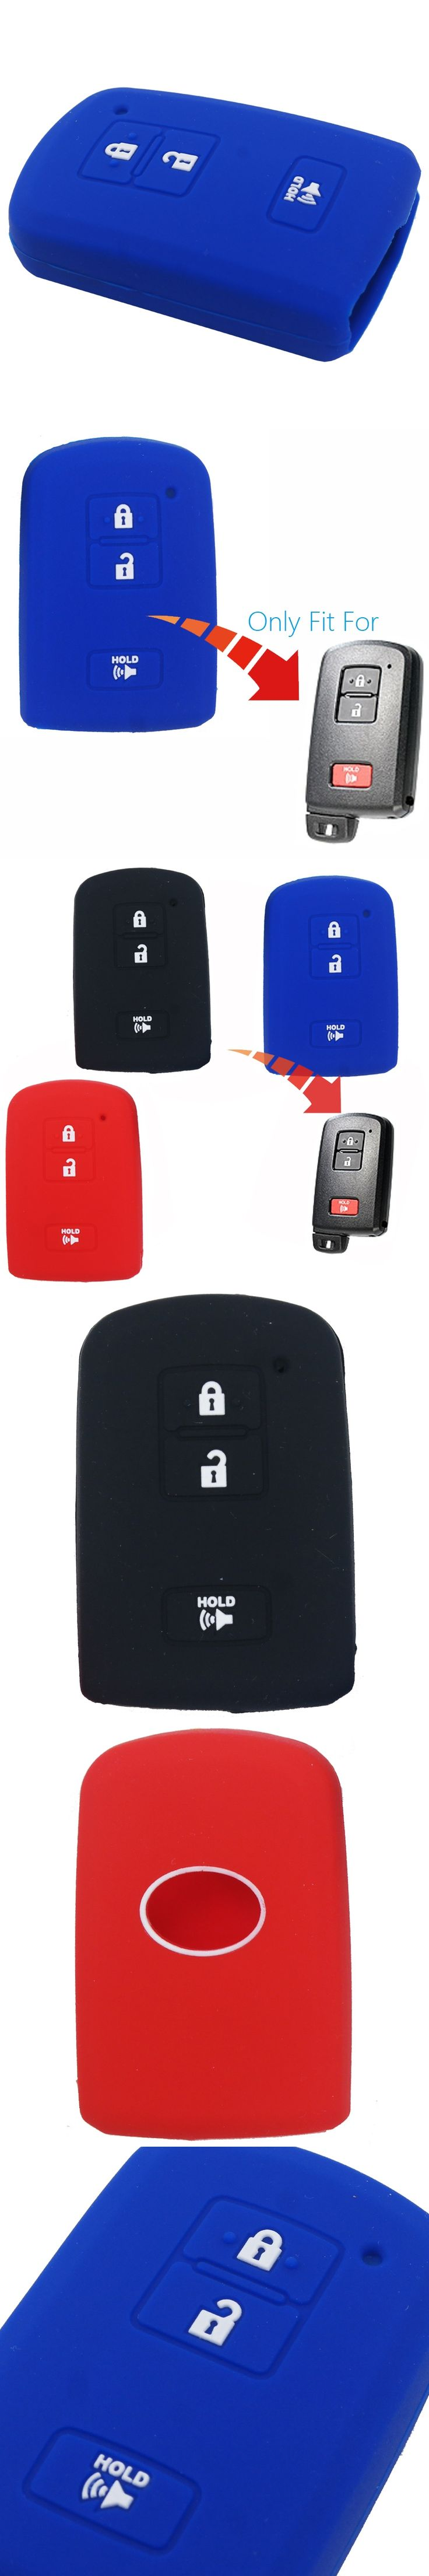 For Toyota Prius C 2012 Camry Avalon RAV4 Corolla 3 buttons Silicone Car Key Case Cover Protector Chain Black Red Blue